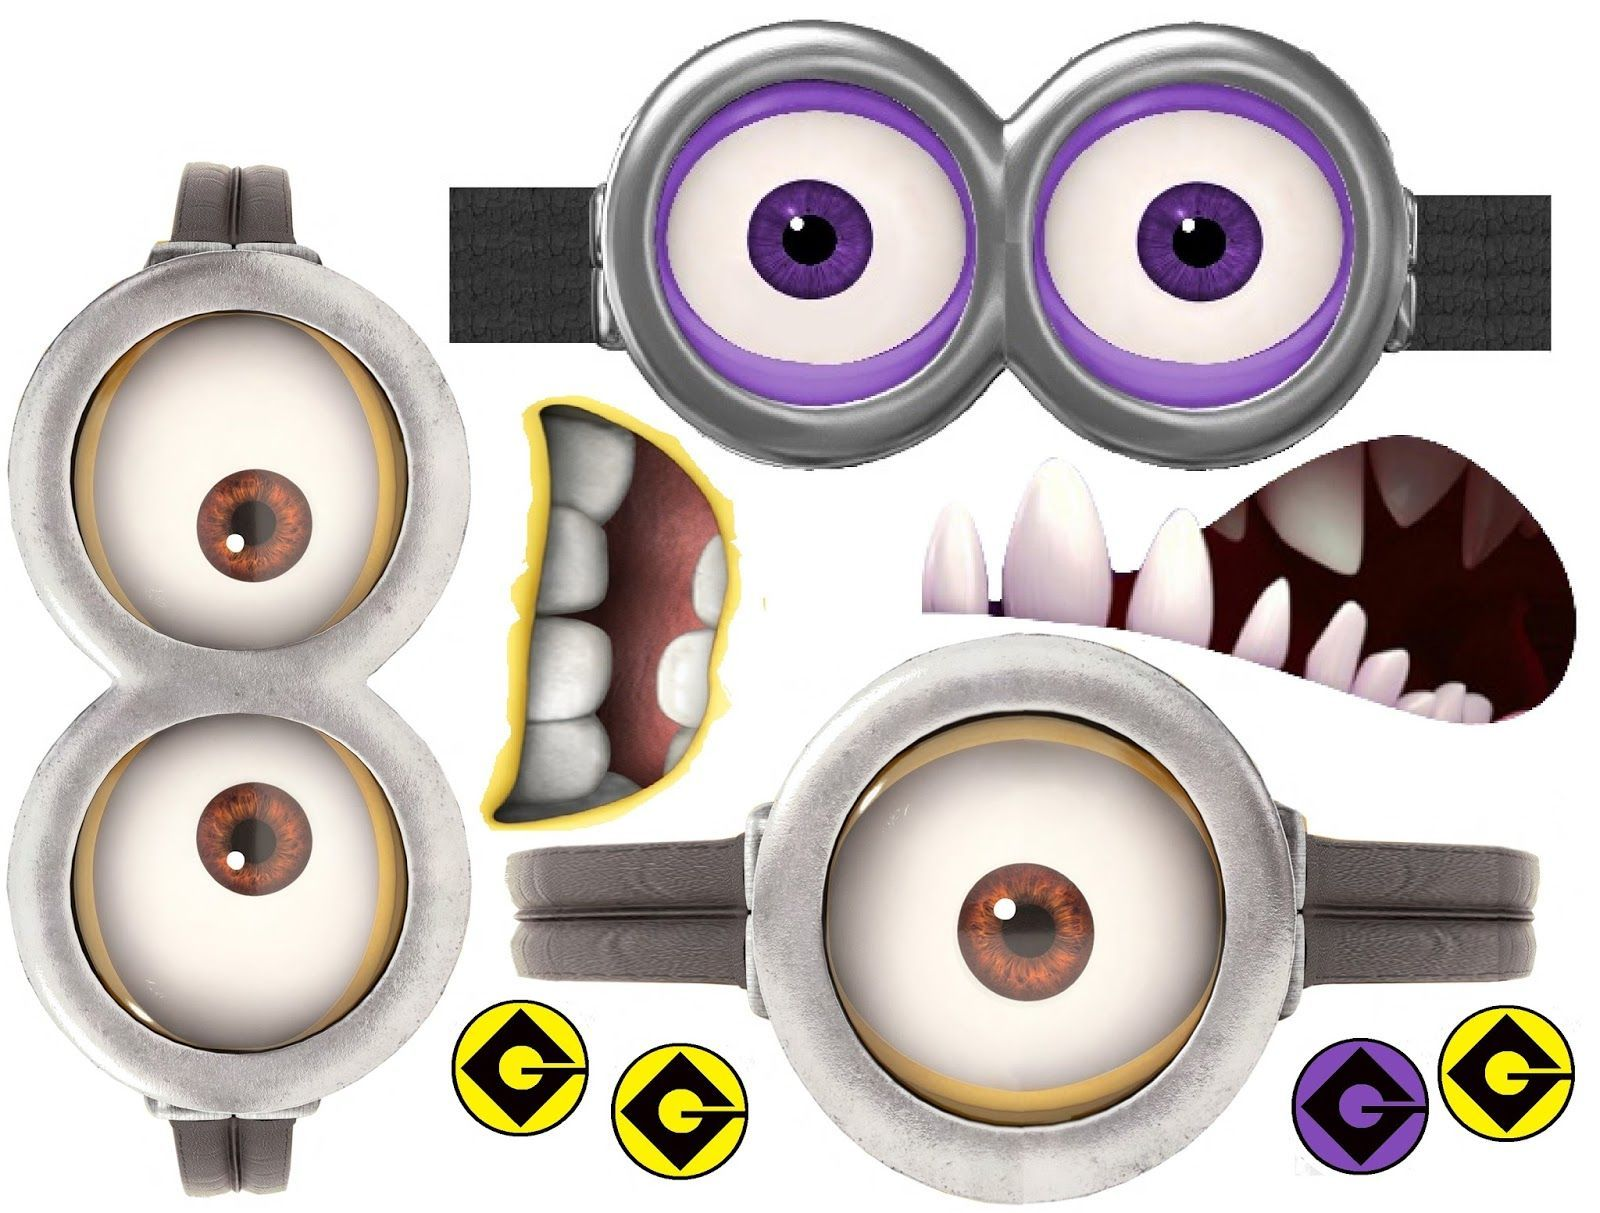 graphic about Printable Minions Eyes identify Pin via Rena Davis-Trammel upon Trayson Minion get together, Minions